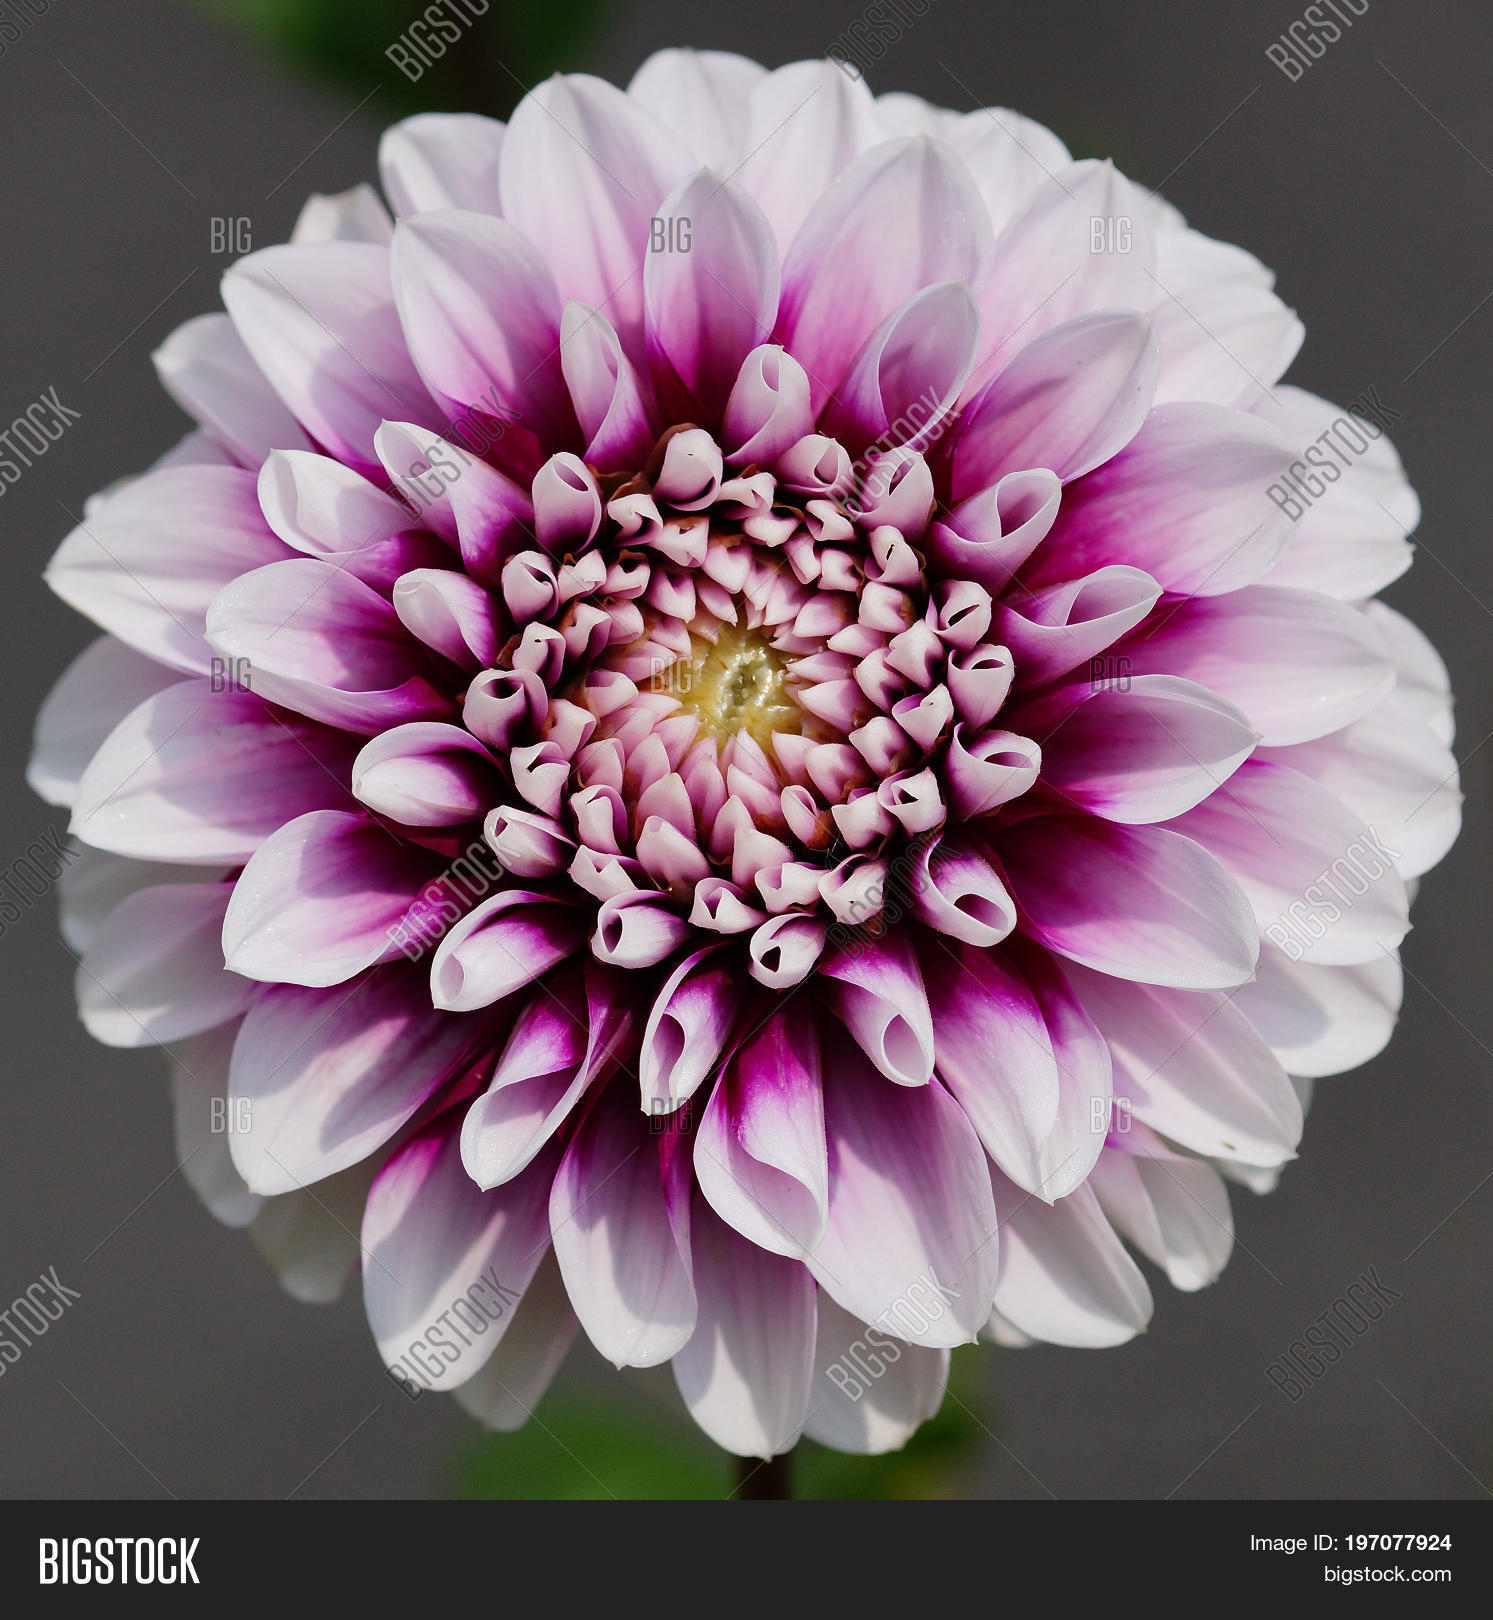 Dahlia Dahlia Image Photo Free Trial Bigstock